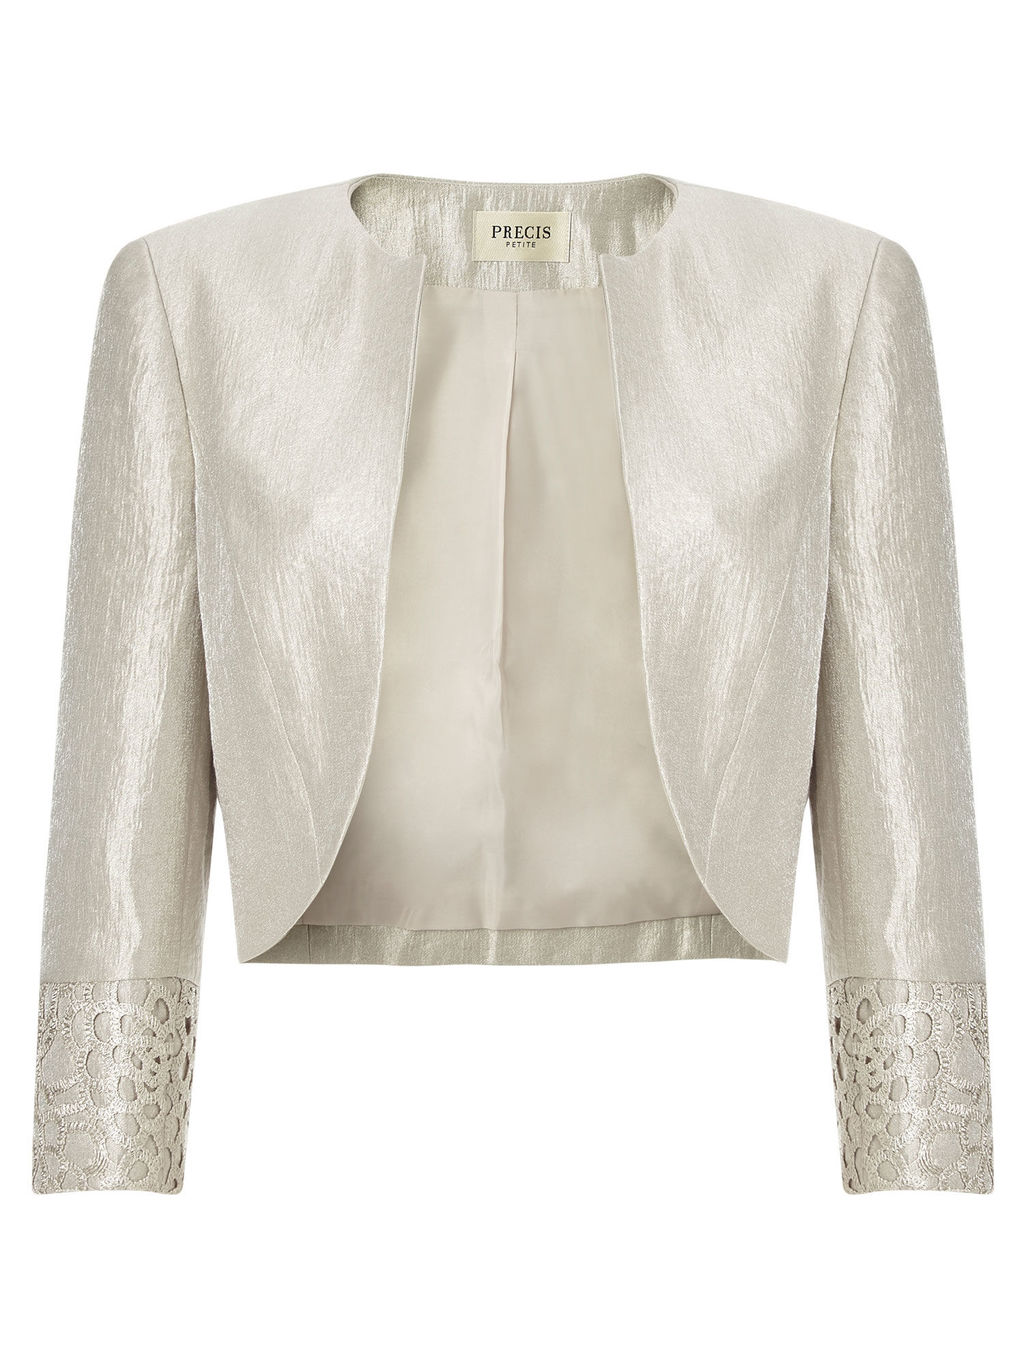 Lace Shimmer Bolero, Oyster - pattern: plain; style: bolero/shrug; collar: round collar/collarless; predominant colour: ivory/cream; length: standard; fit: tailored/fitted; fibres: polyester/polyamide - mix; occasions: occasion; sleeve length: 3/4 length; sleeve style: standard; collar break: low/open; pattern type: fabric; texture group: brocade/jacquard; season: a/w 2015; wardrobe: event